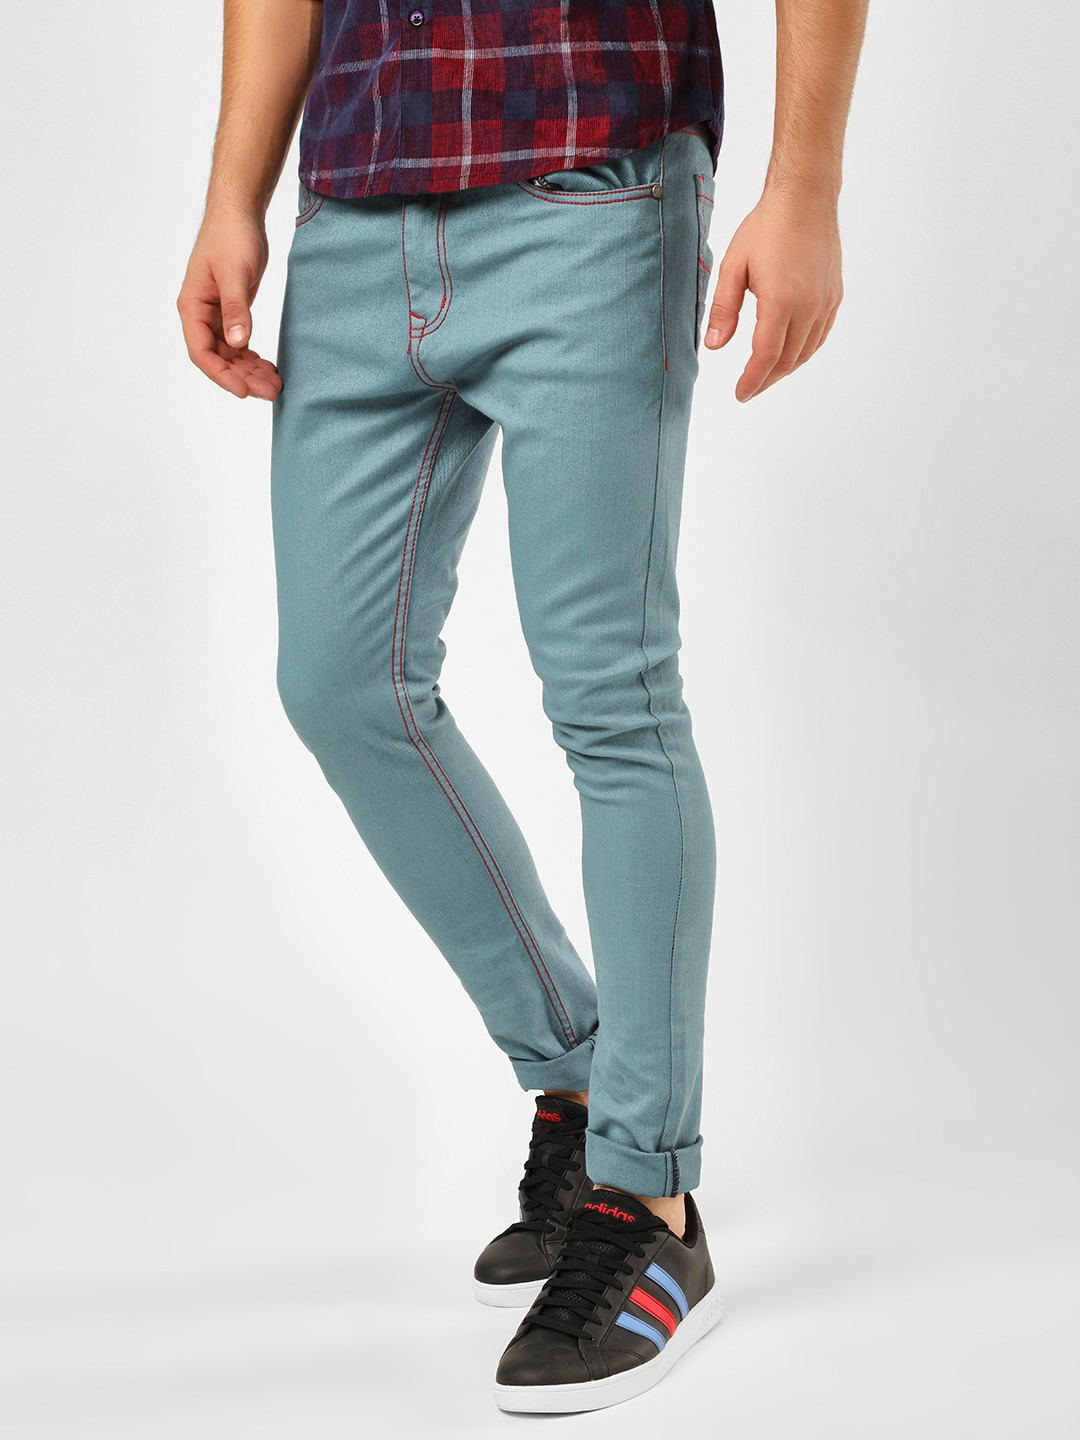 K Denim Blue Over Dyed Skinny Jeans 1